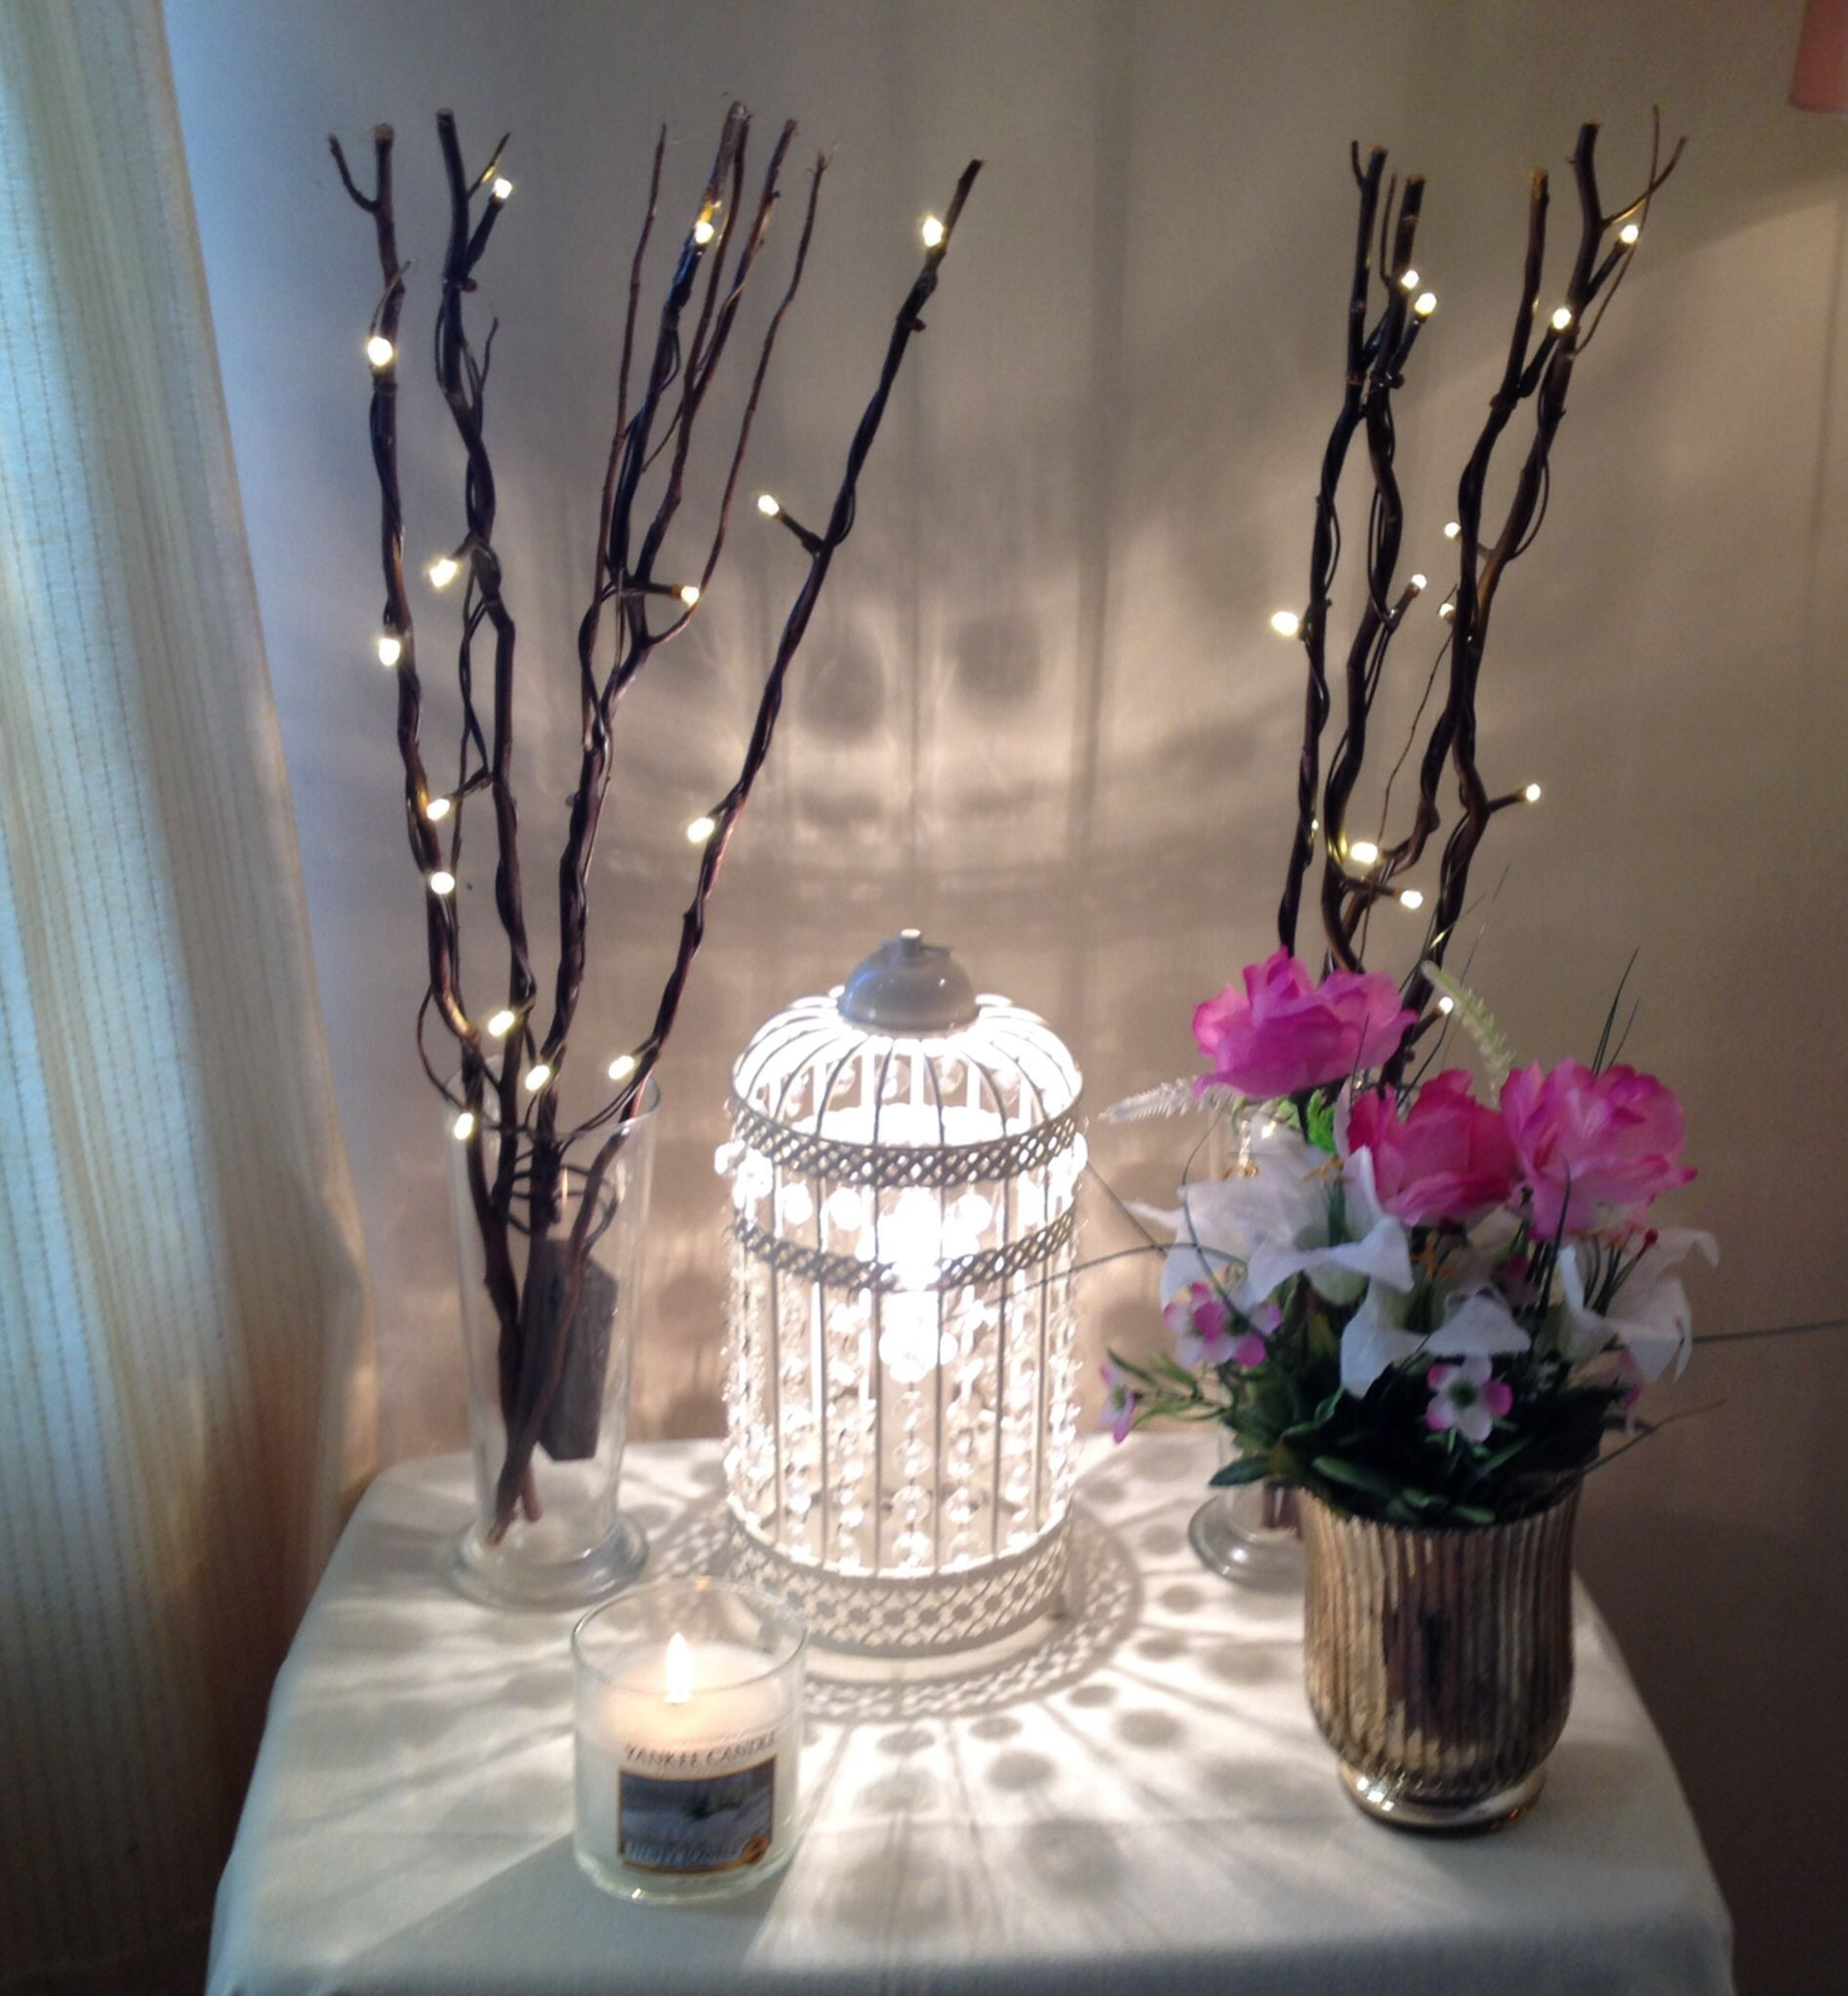 little shabby chic corner cage lamp from homebase tablecloth